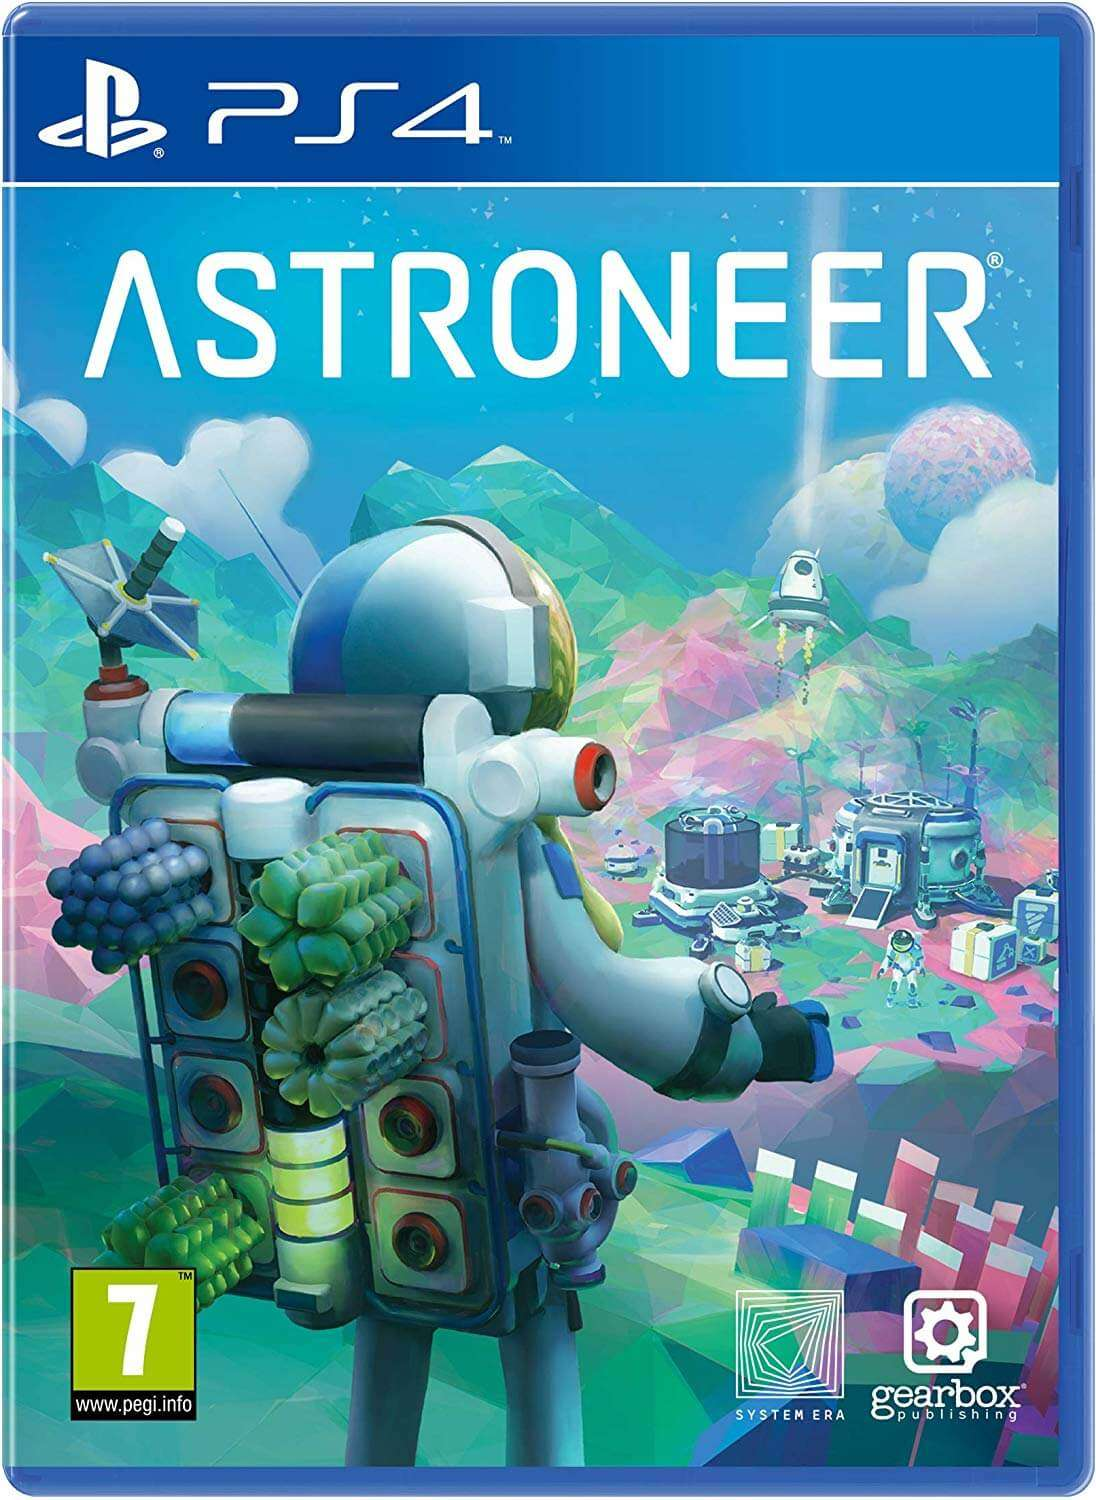 Astroneer For PlayStation 4 (PS4)